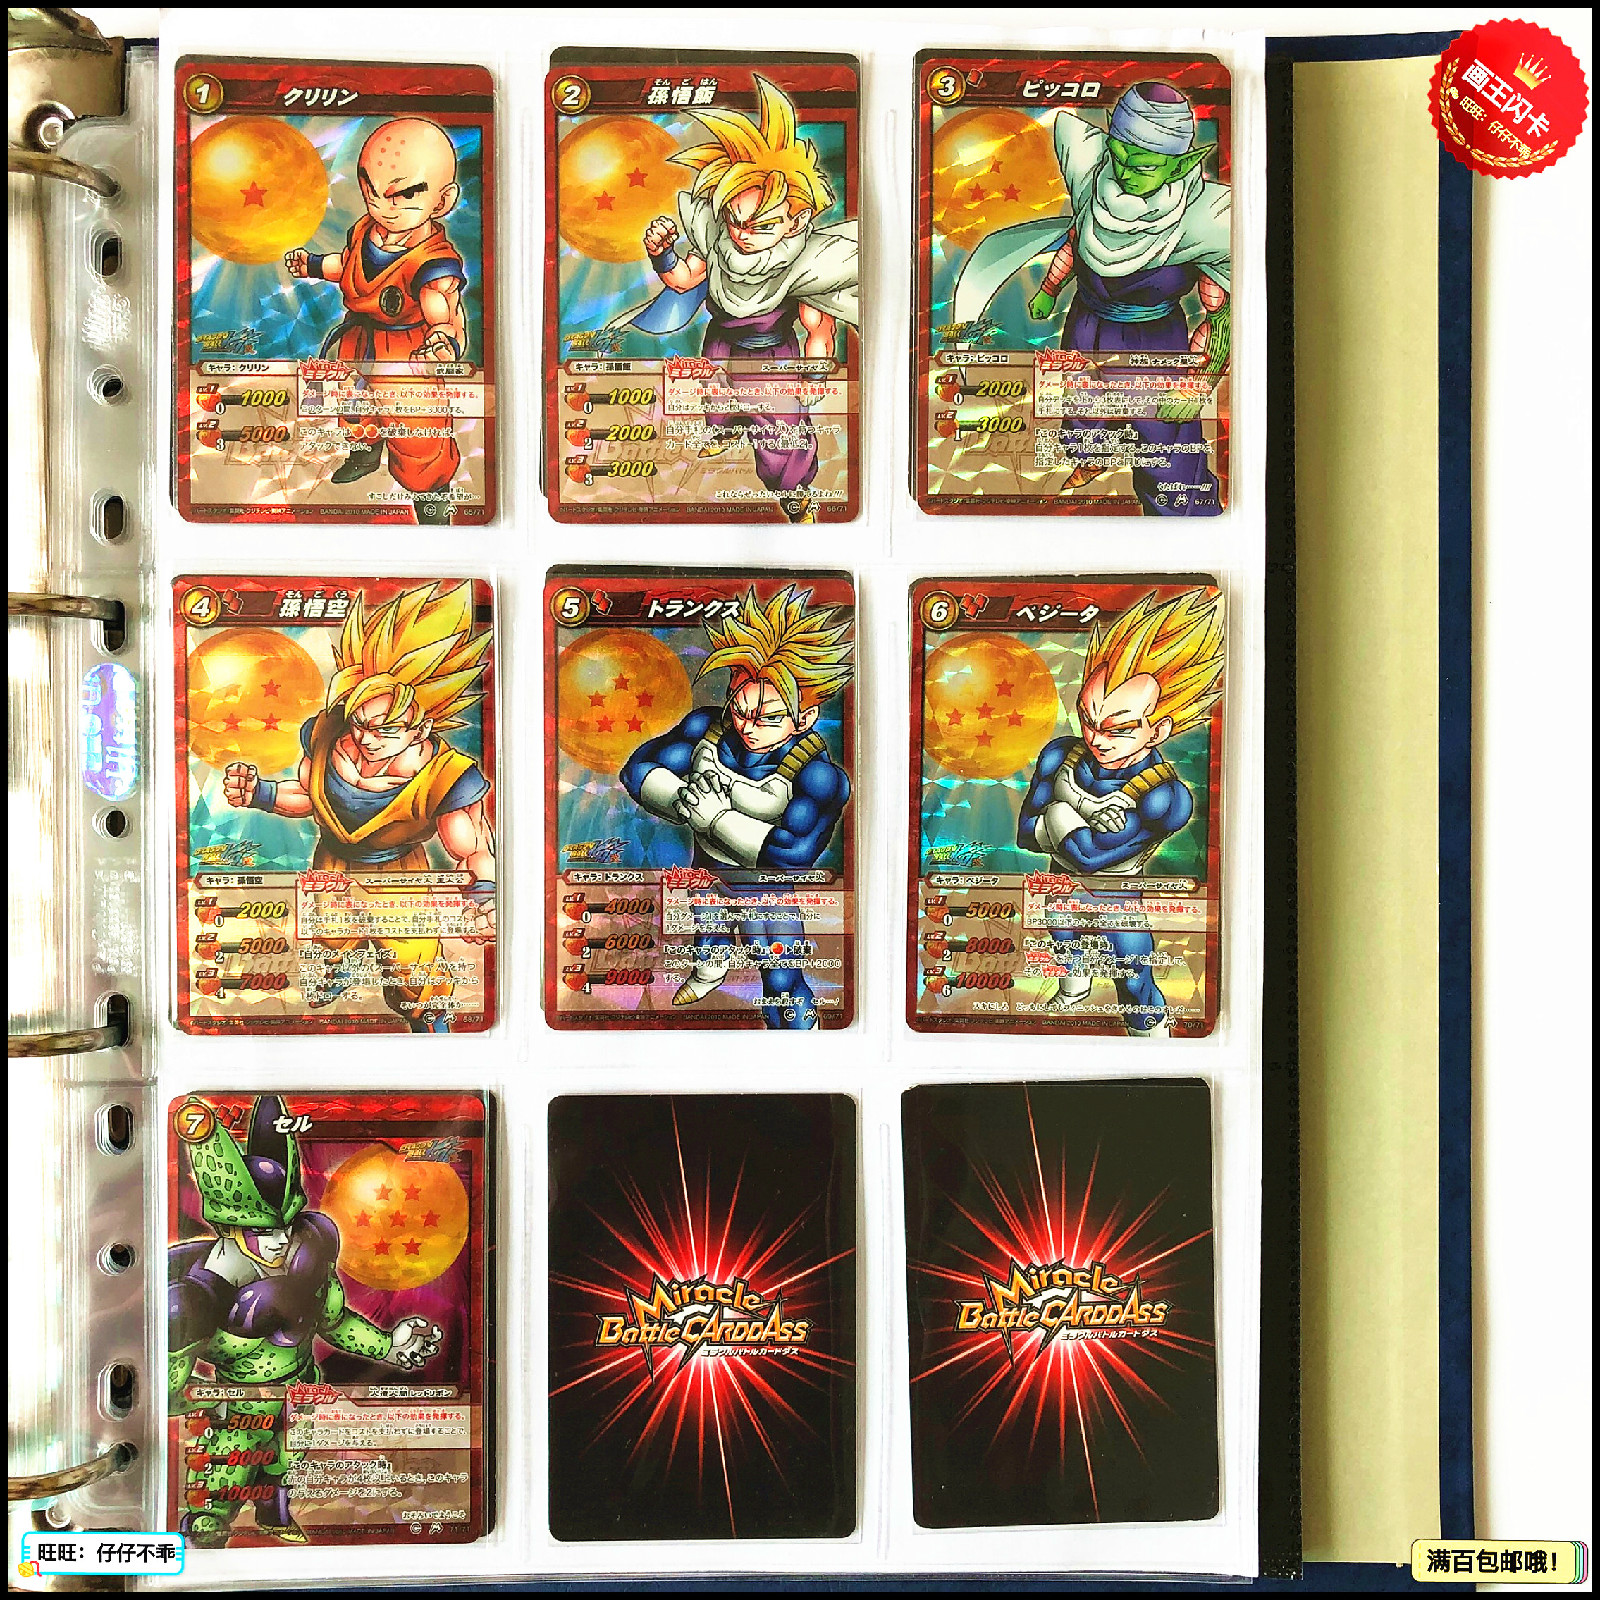 Japan Original Dragon Ball Hero MBC God Super Saiyan Goku Cell Toys Hobbies Collectibles Game Collection Anime Cards